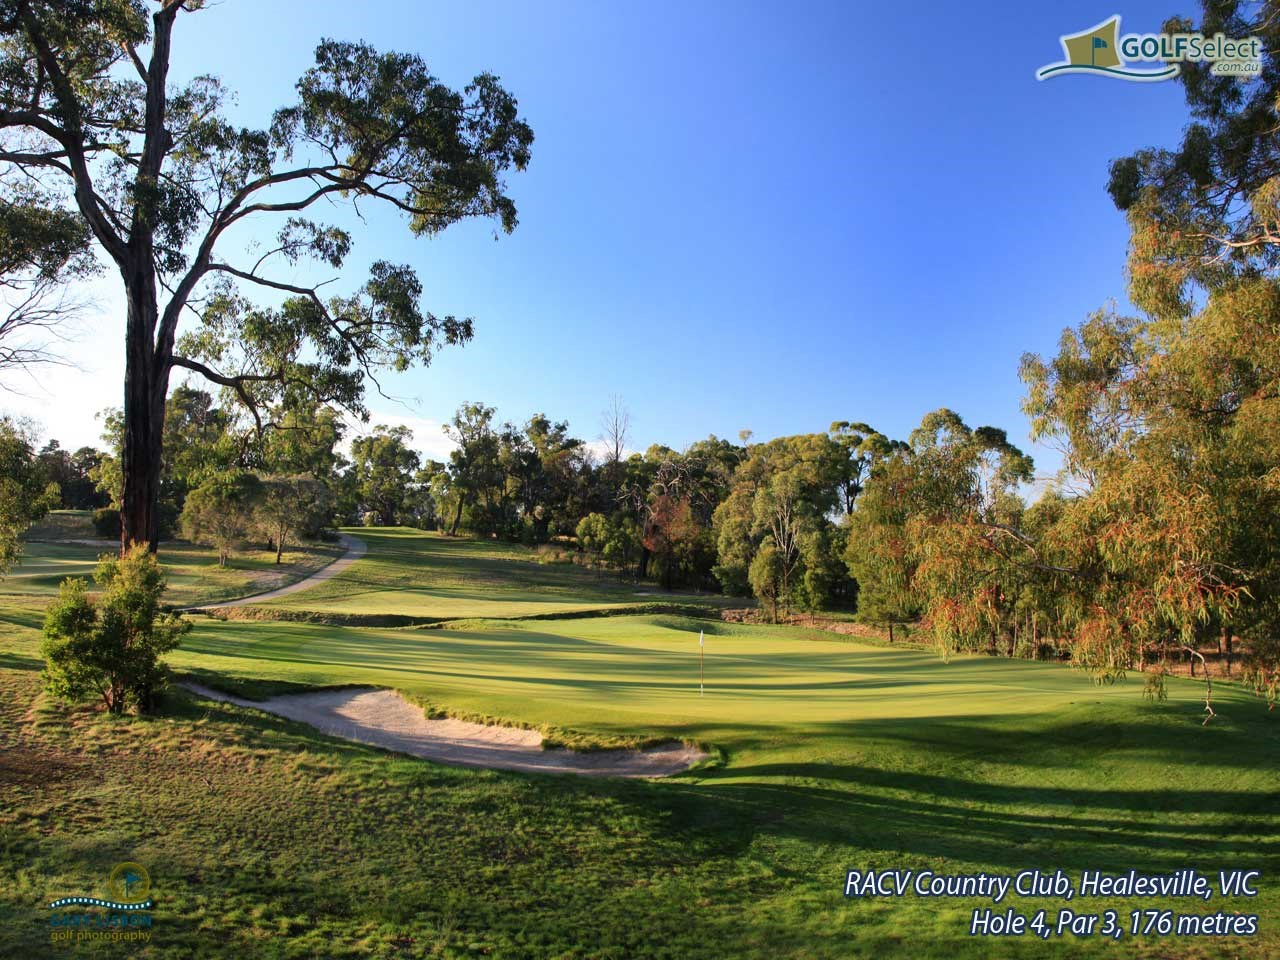 RACV Healesville Country Club Hole 4, Par 3, 176 metres